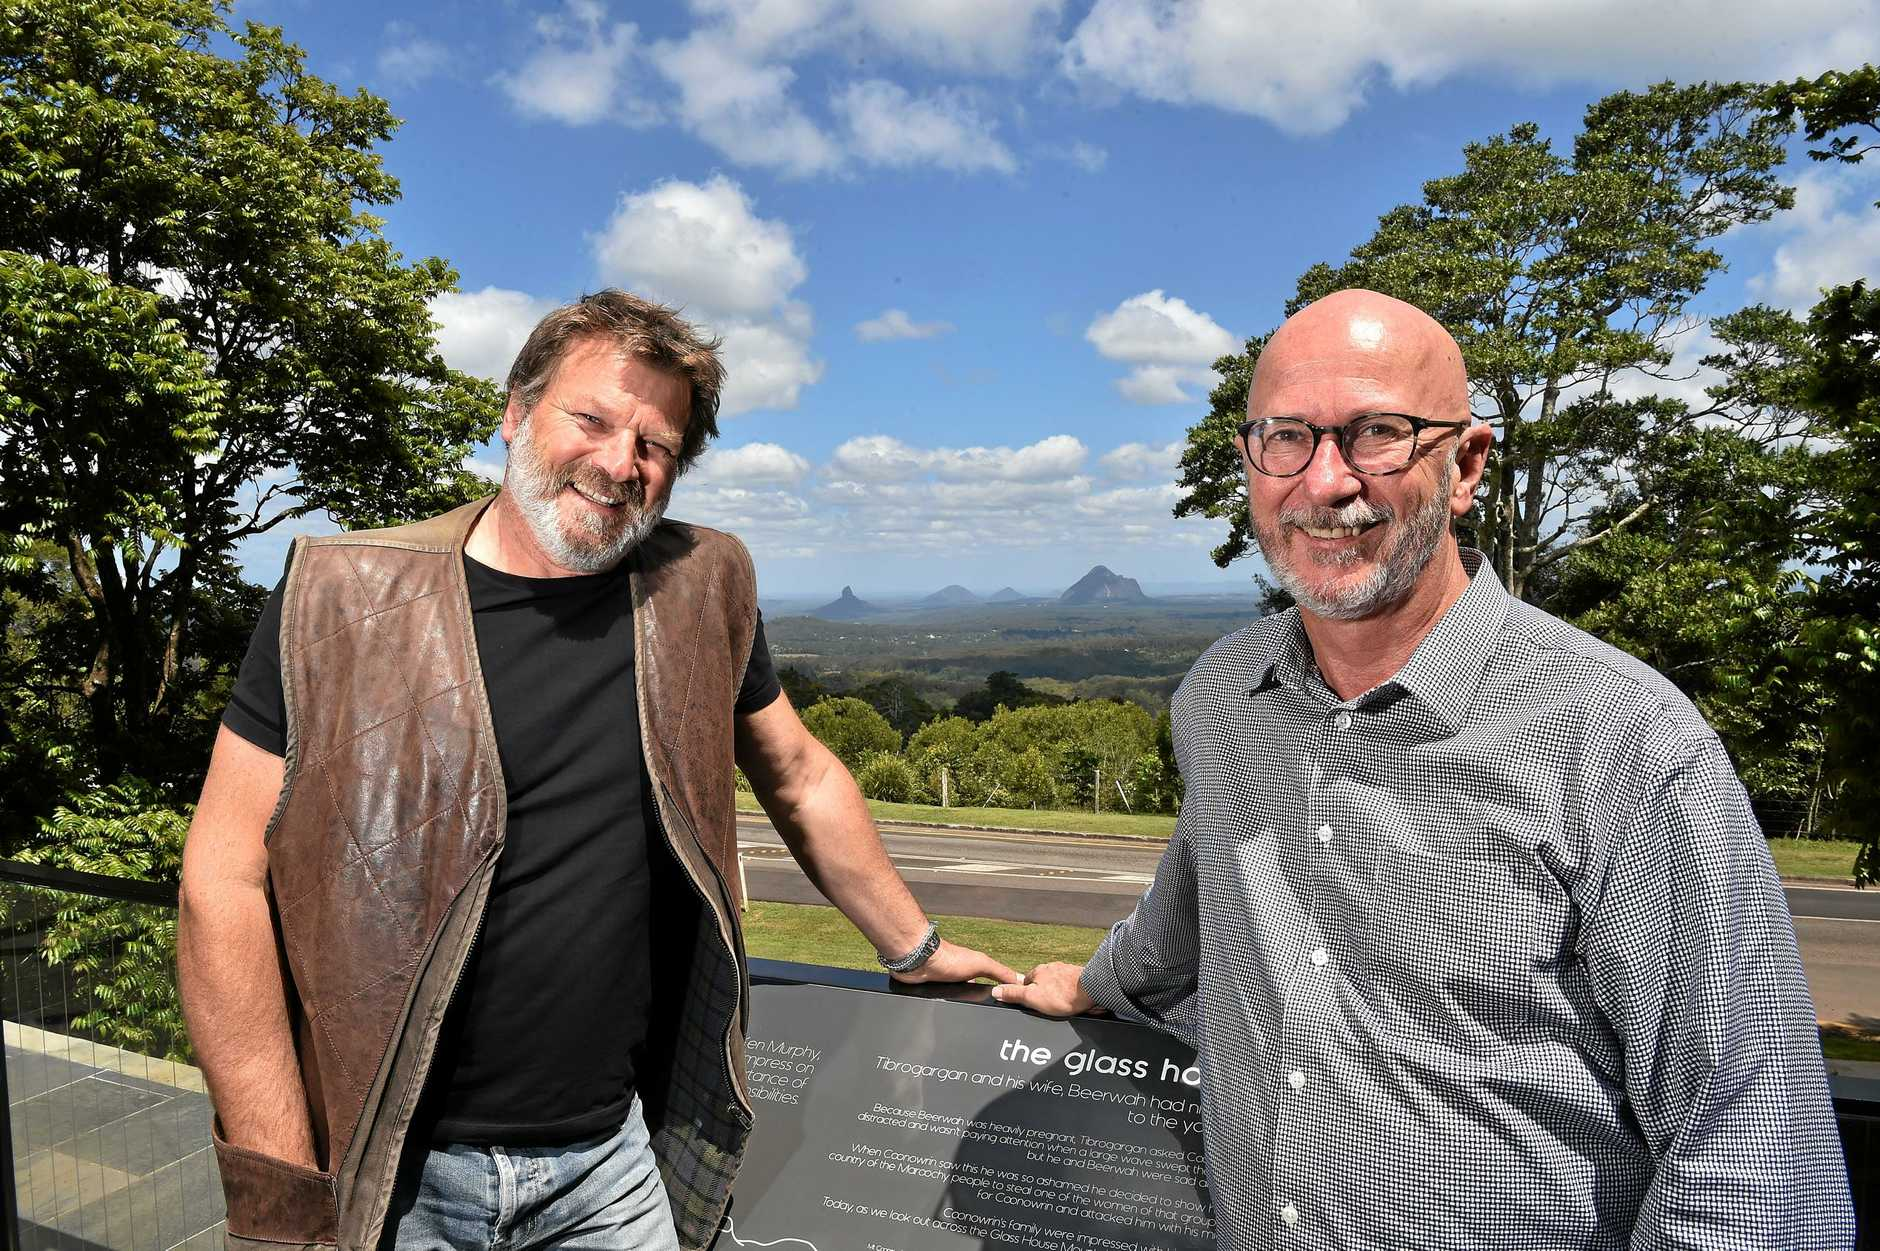 Tony Gill (right) and Ferre De Deyne are behind a push for a hinterland art galley with a view of the Glasshouse Mountains.